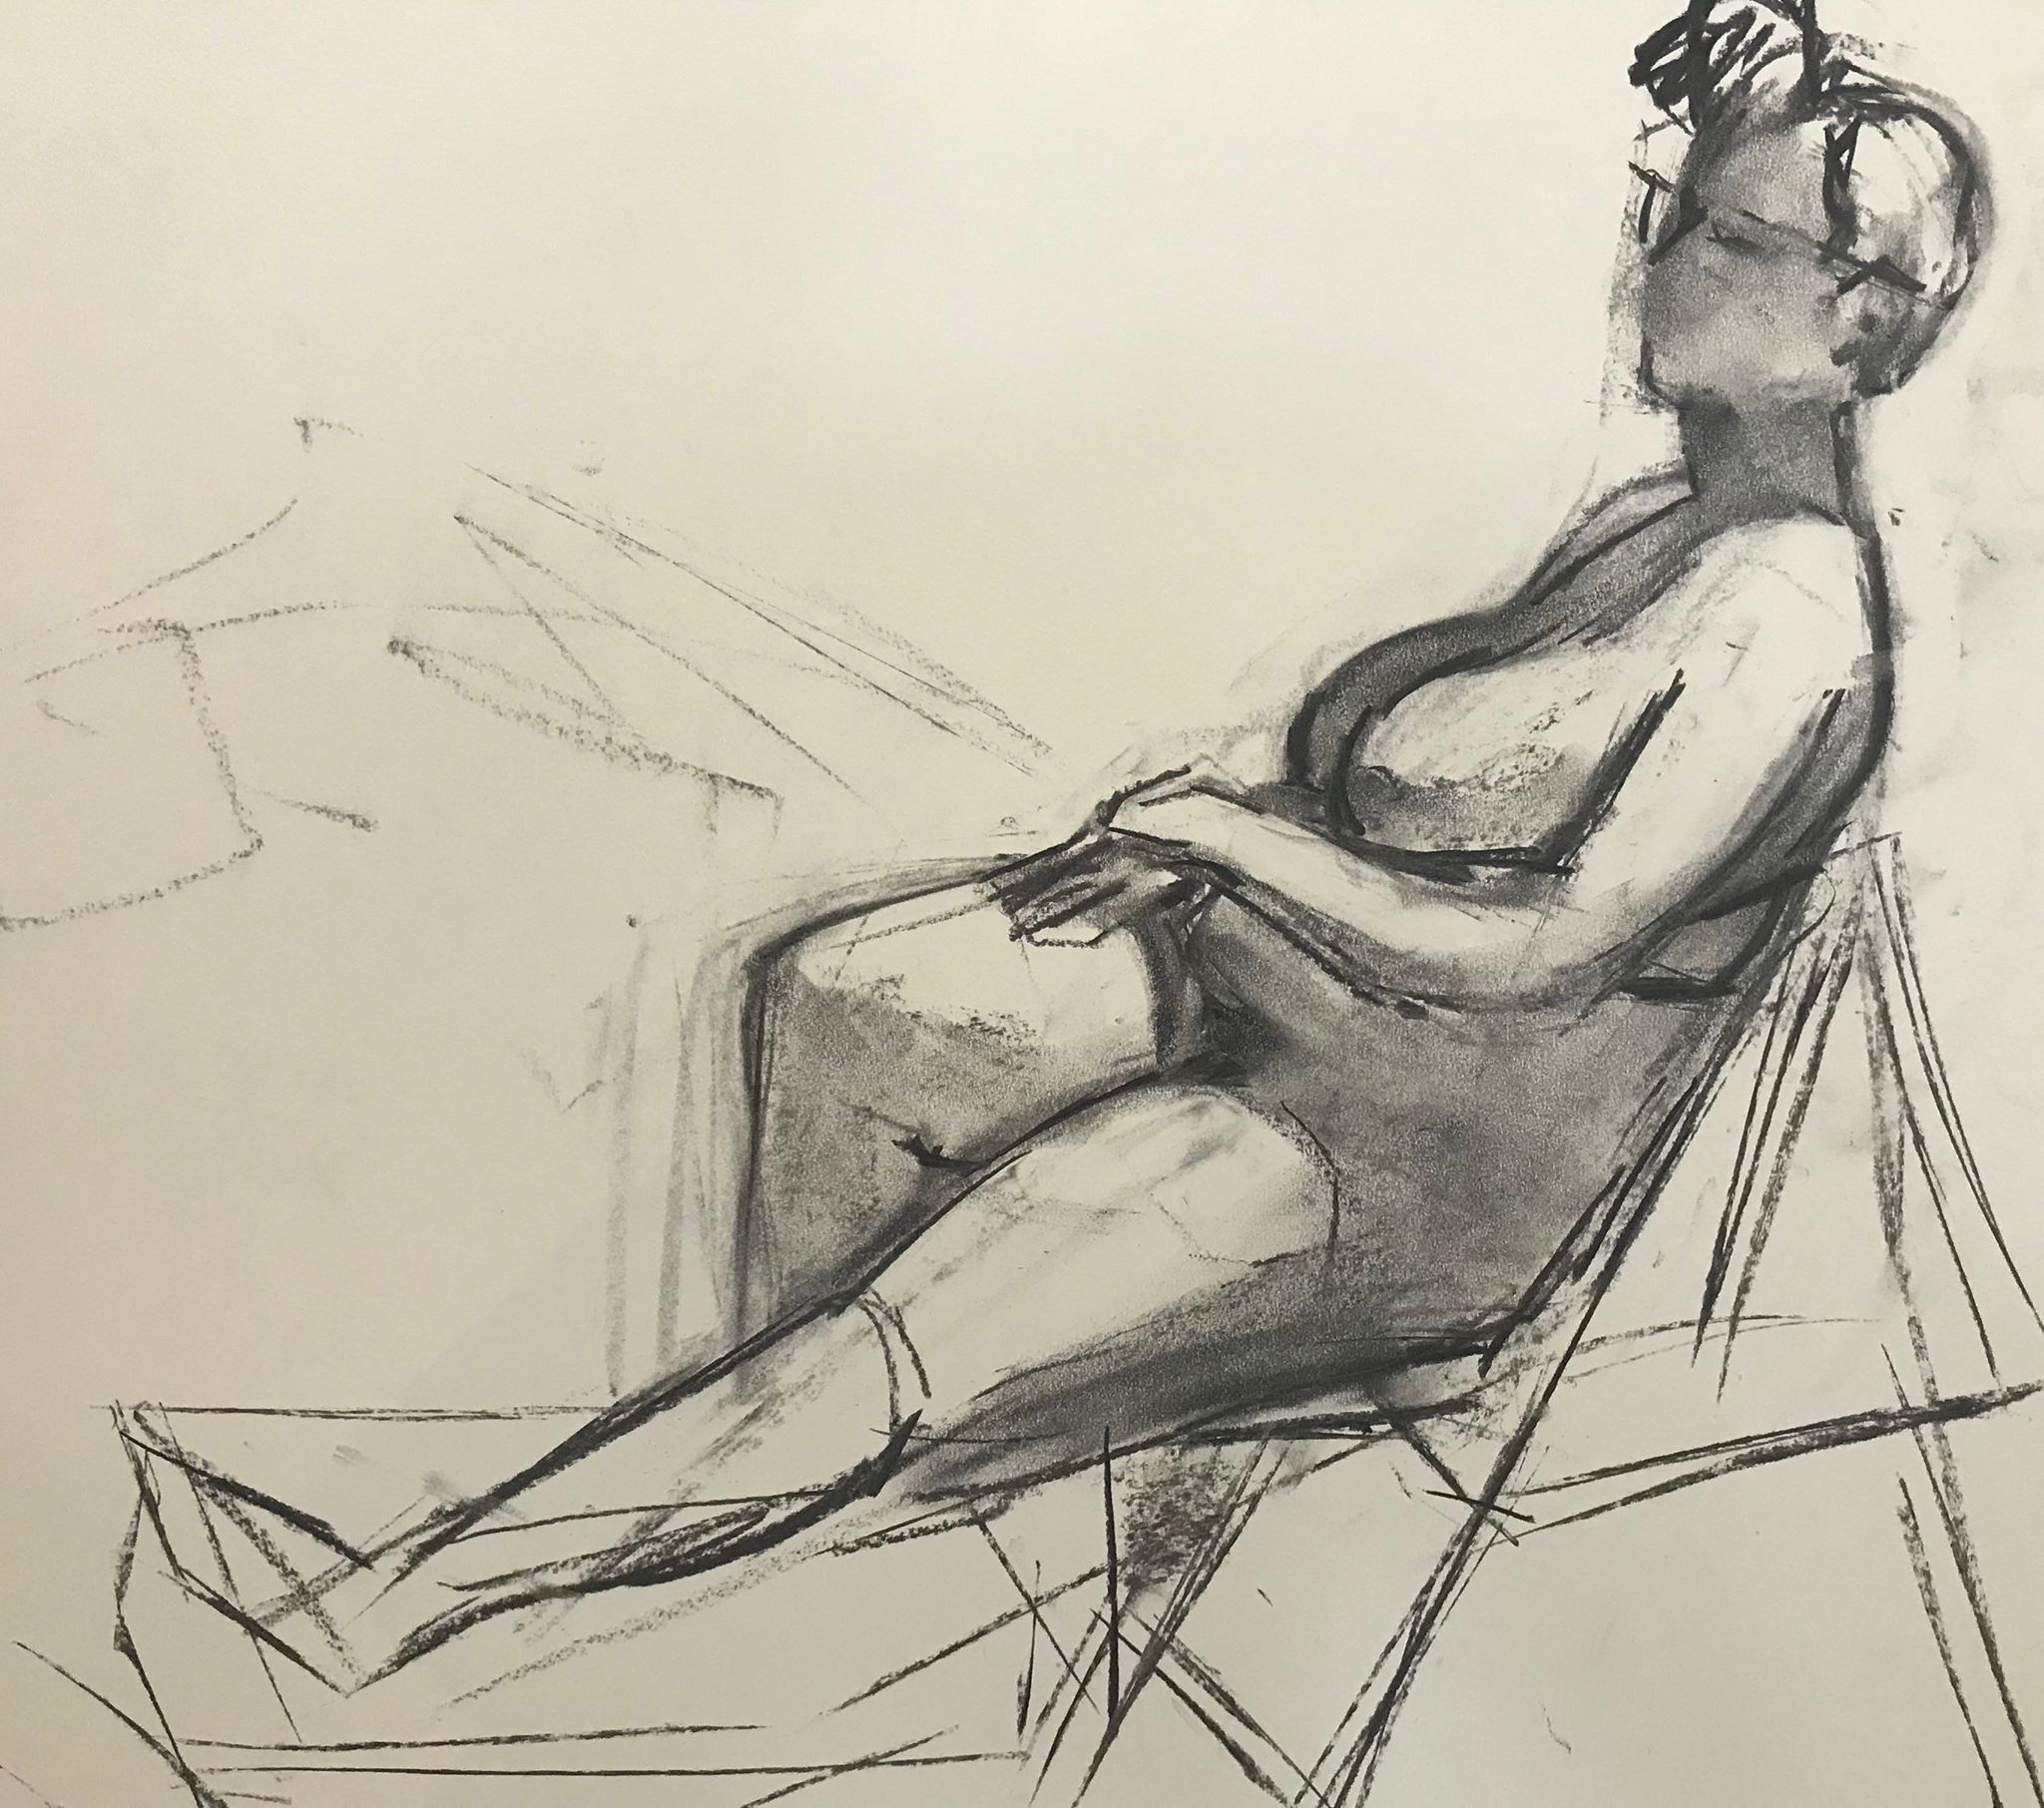 Figure reclining in a chair (2), charcoal on paper, 18x24 inches (my drawing)